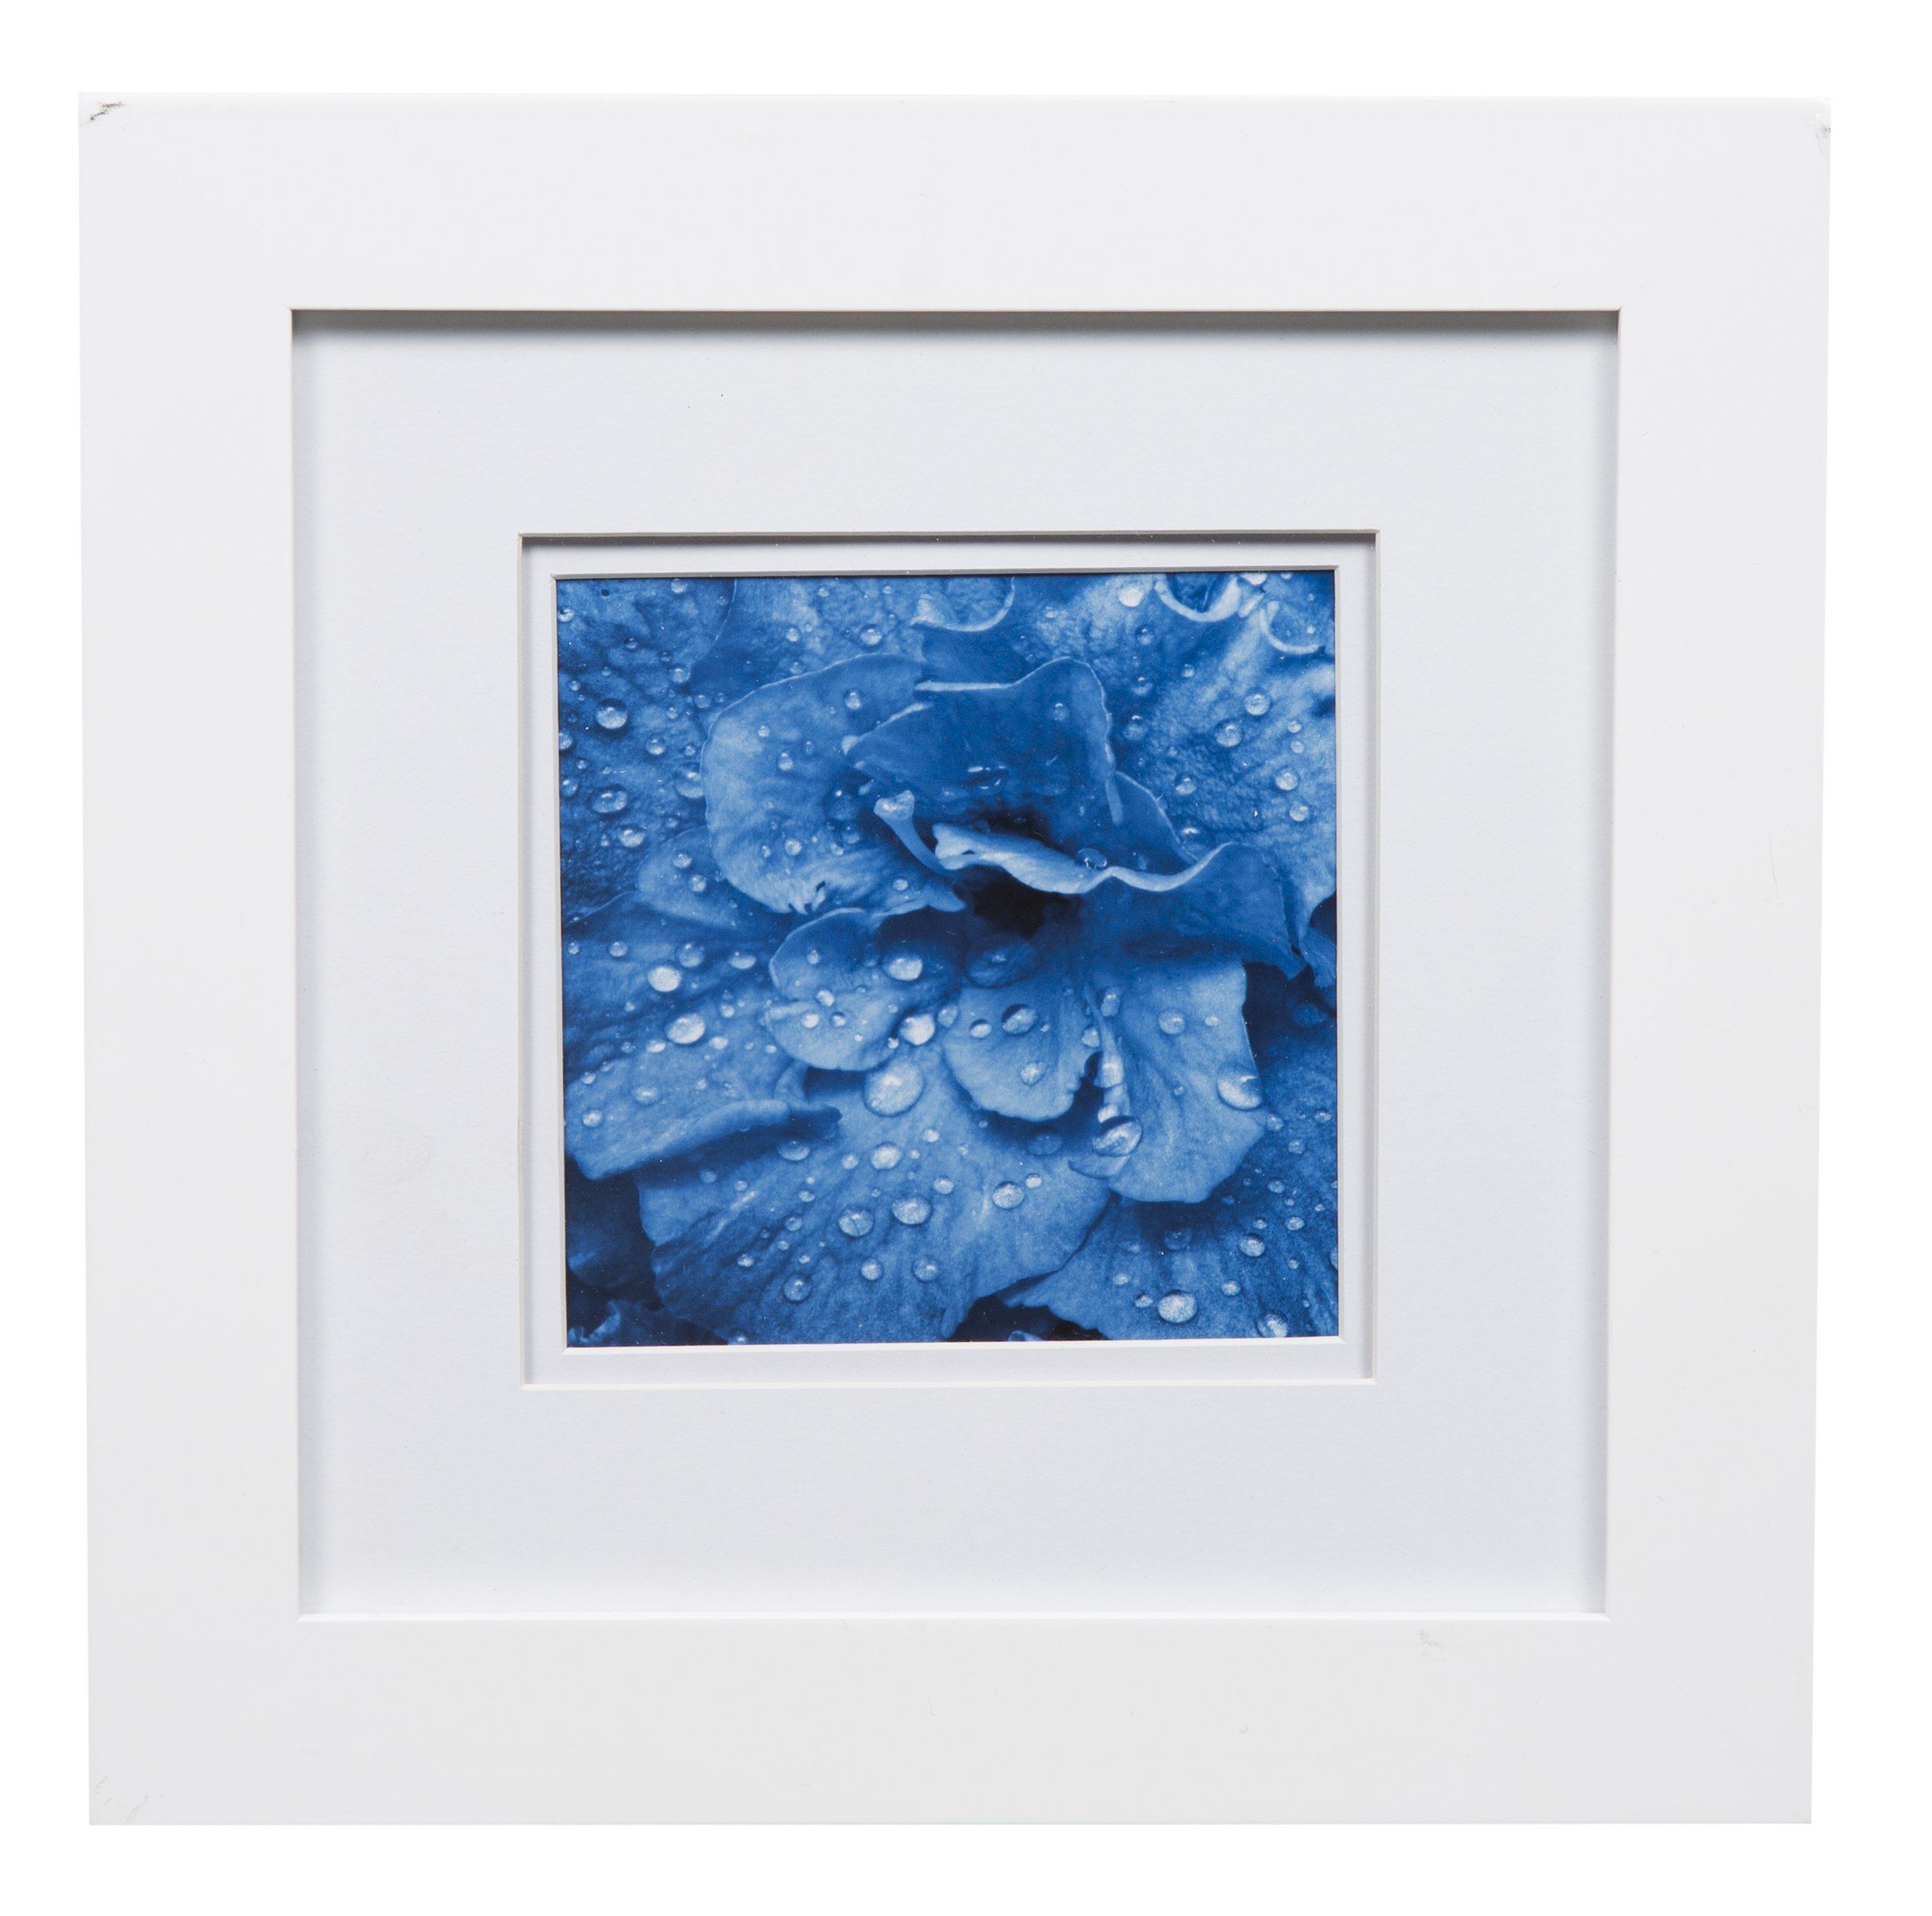 Gallery Solutions Photo 8x8 Flat Tabletop or Wall Frame with Double White Mat for 5x5 Picture, 8'' x 8'', by Gallery Solutions